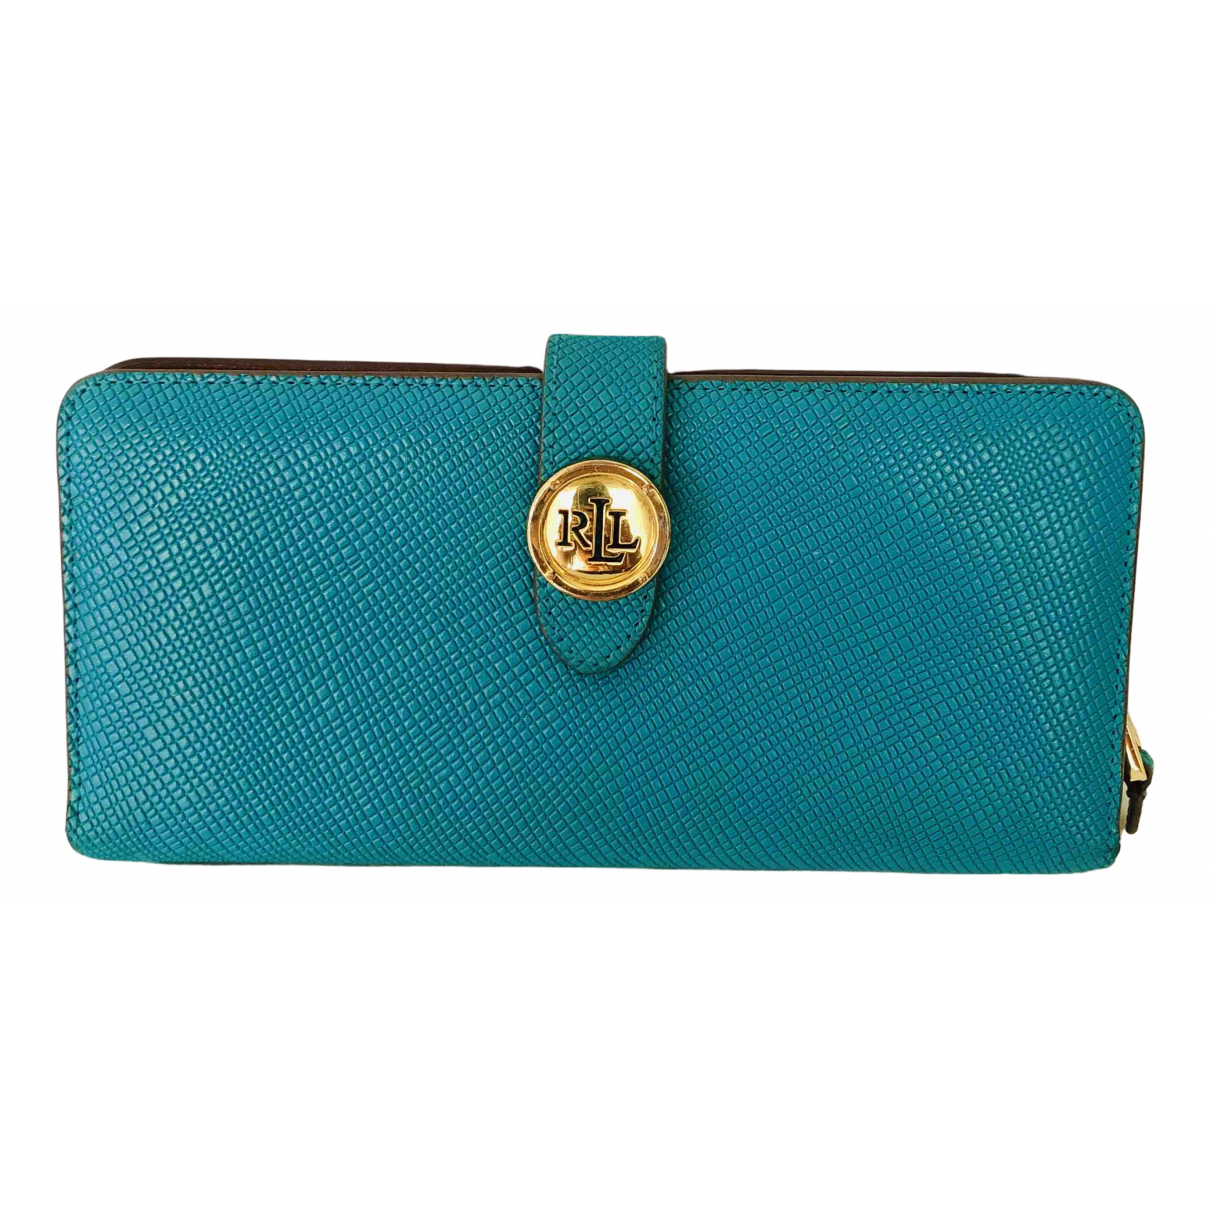 Lauren Ralph Lauren N Turquoise Leather wallet for Women N